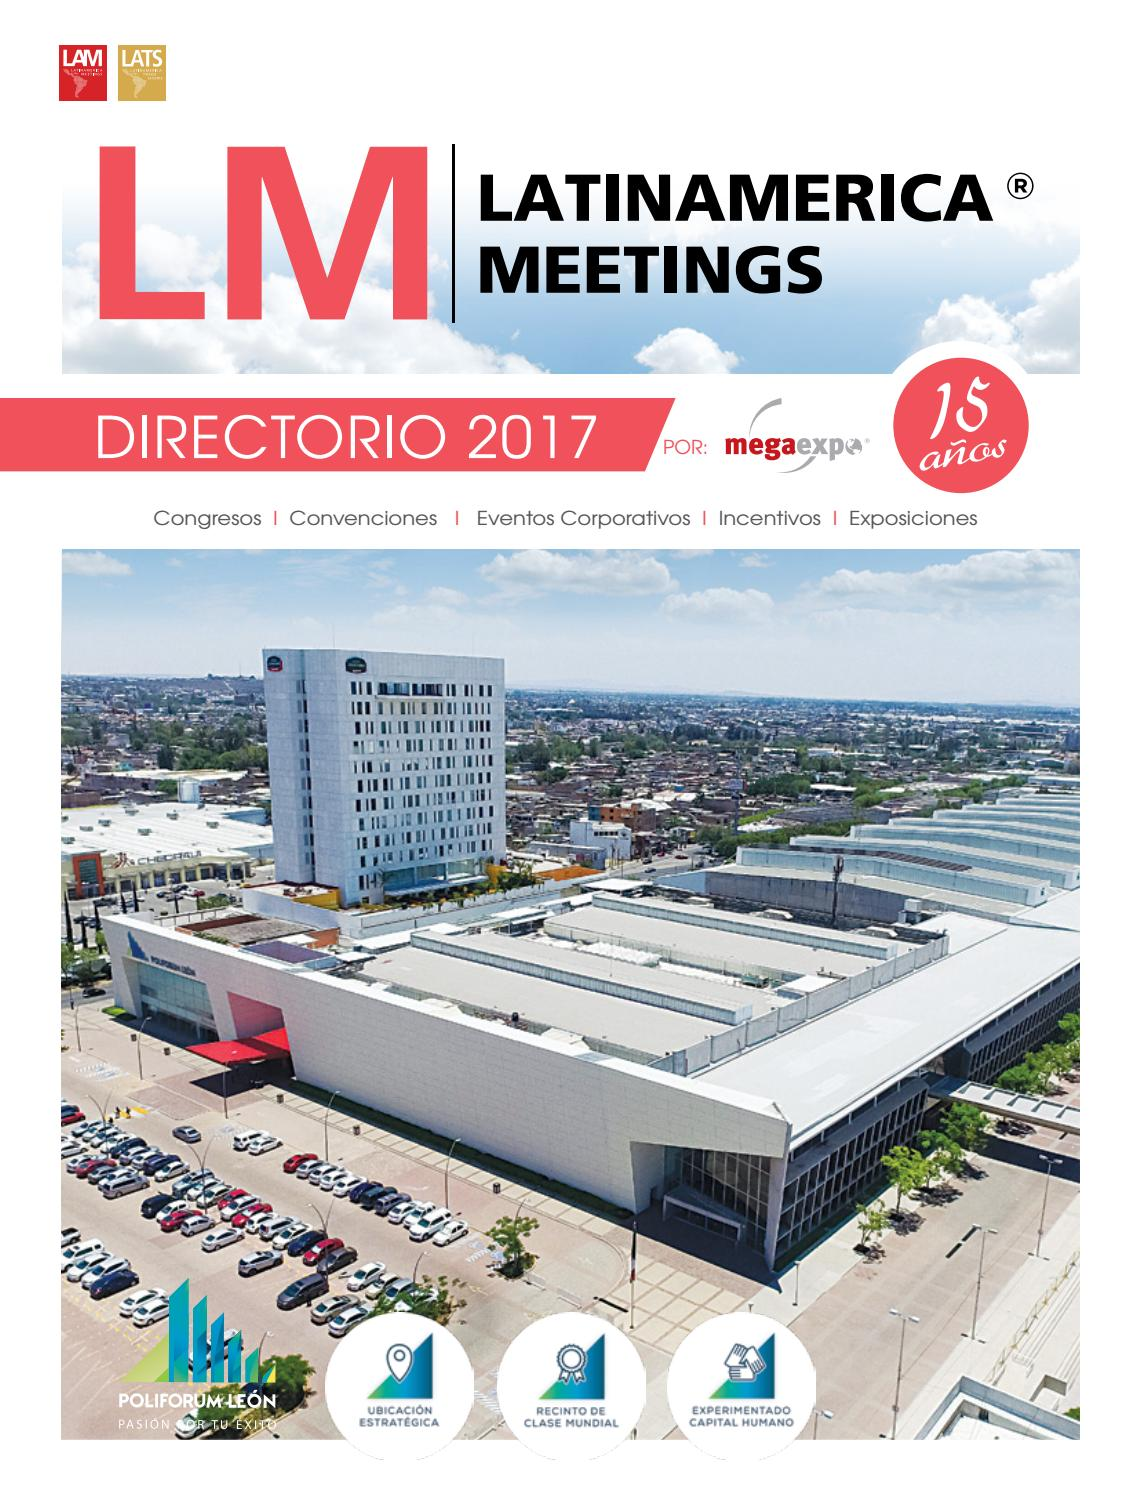 Directorio 2017 by Latinamerica Meetings - issuu be7596480c71c